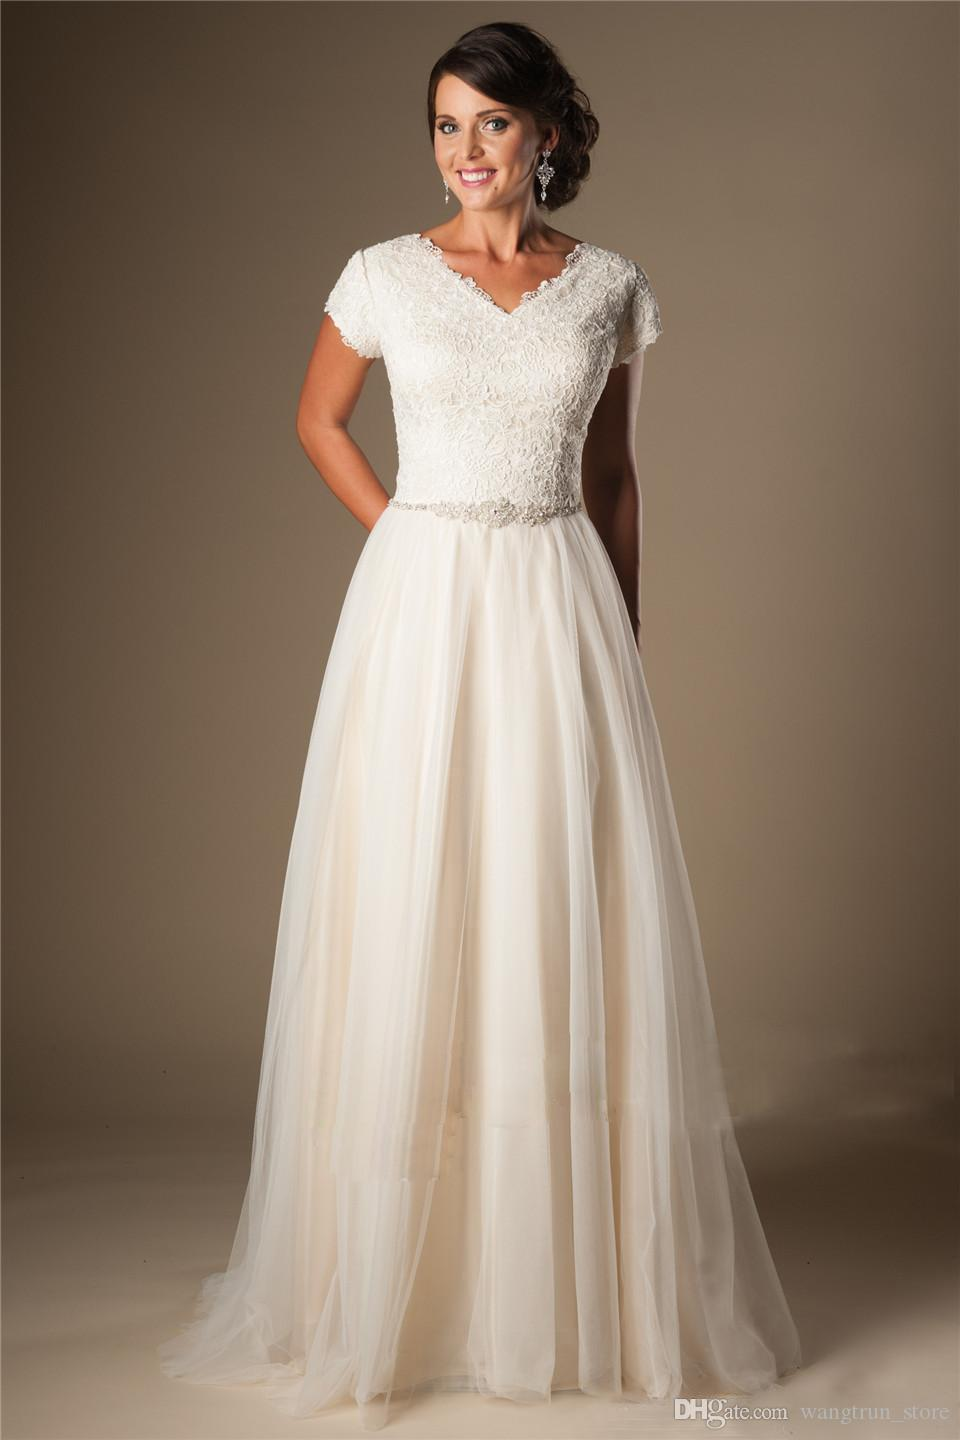 Modest Short Sleeves Cheap Wedding Dresses 2019 Ivory V Neck Buttons Lace Tulle Bridal Gowns A-line Inexpensive Wedding Gowns